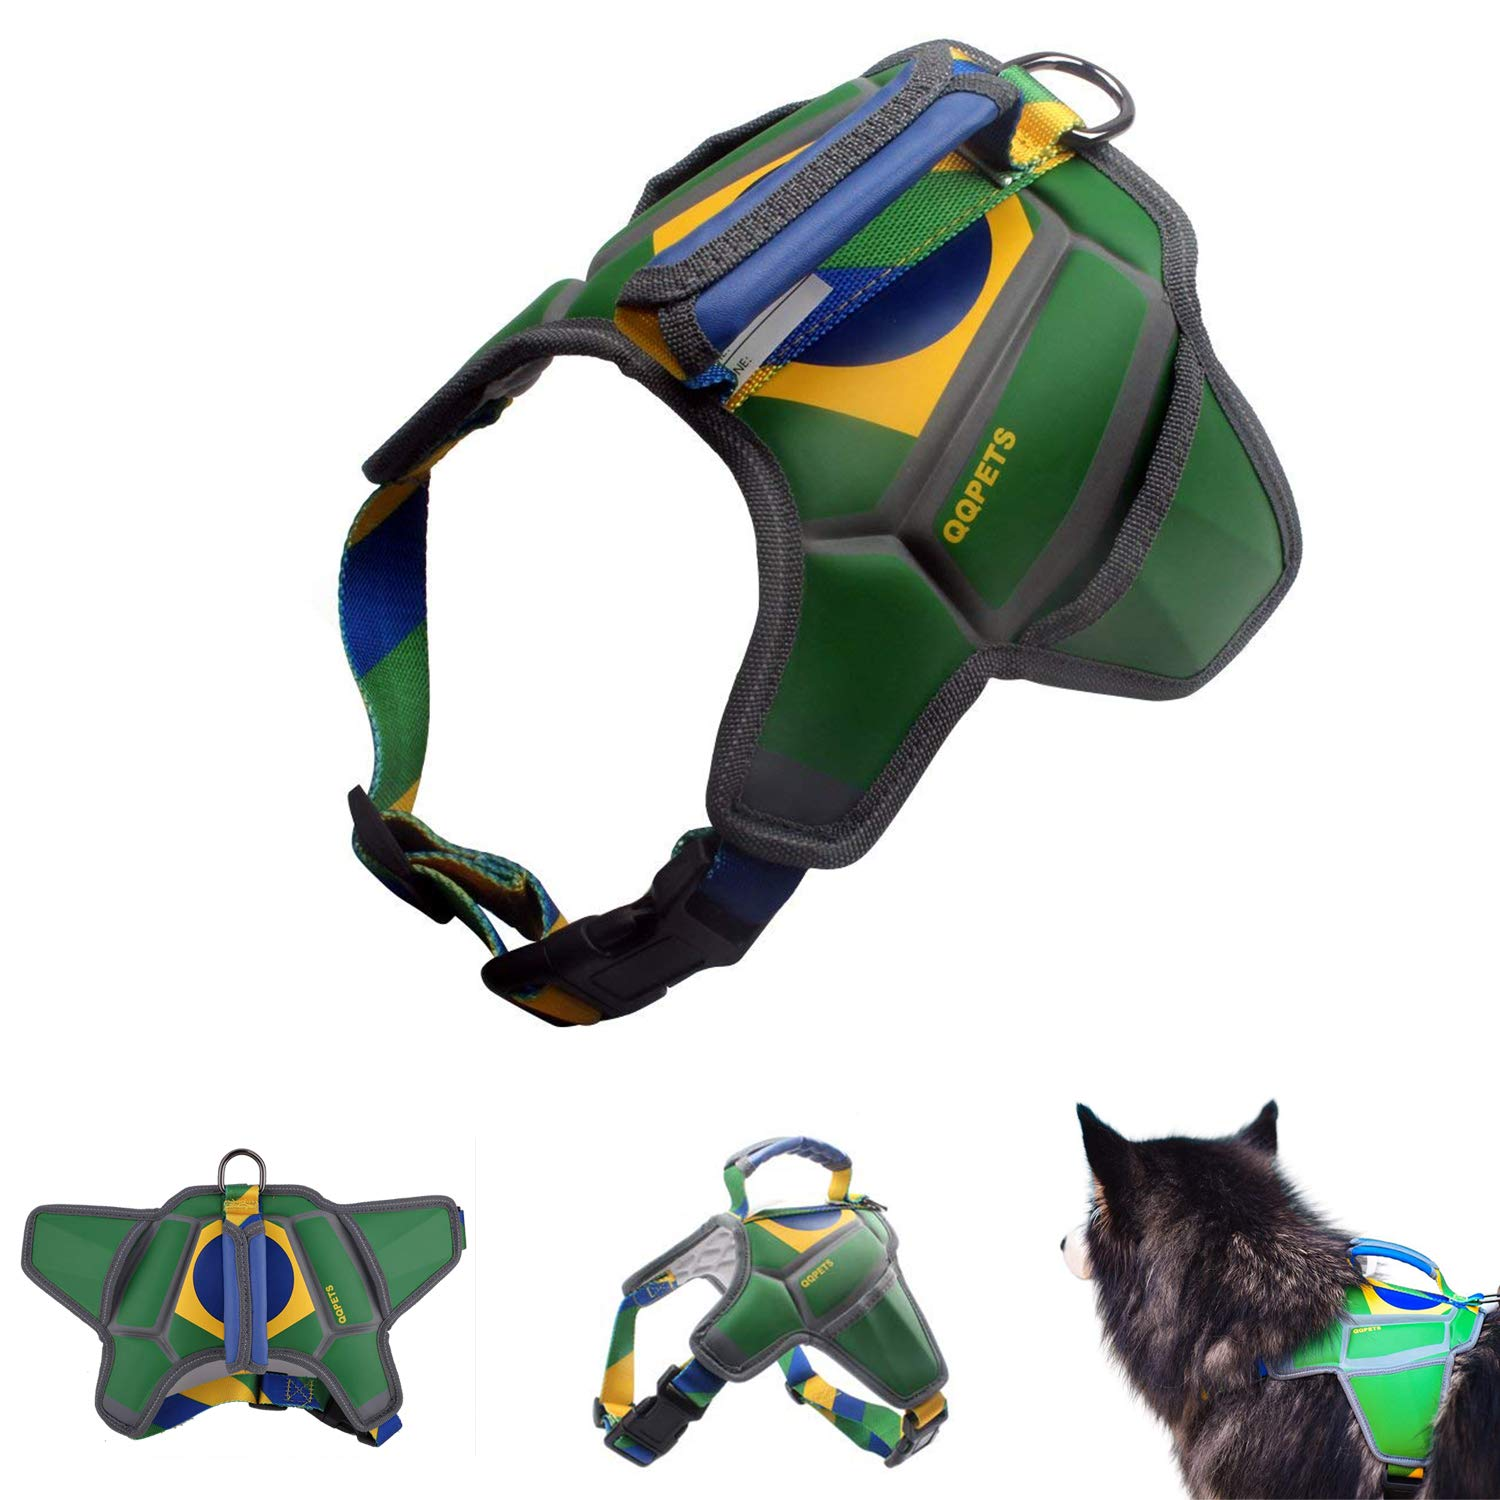 Green harness Small Green harness Small QQPETS No Pull Reflective Dog Harness with Handle Pocket Heavy Duty Padded Pet Vest Harness Small Medium Puppy Breed Girl Boy 20-45lb Adjustable Chest 23-29  Green Brazil Flag Printed Top Clip